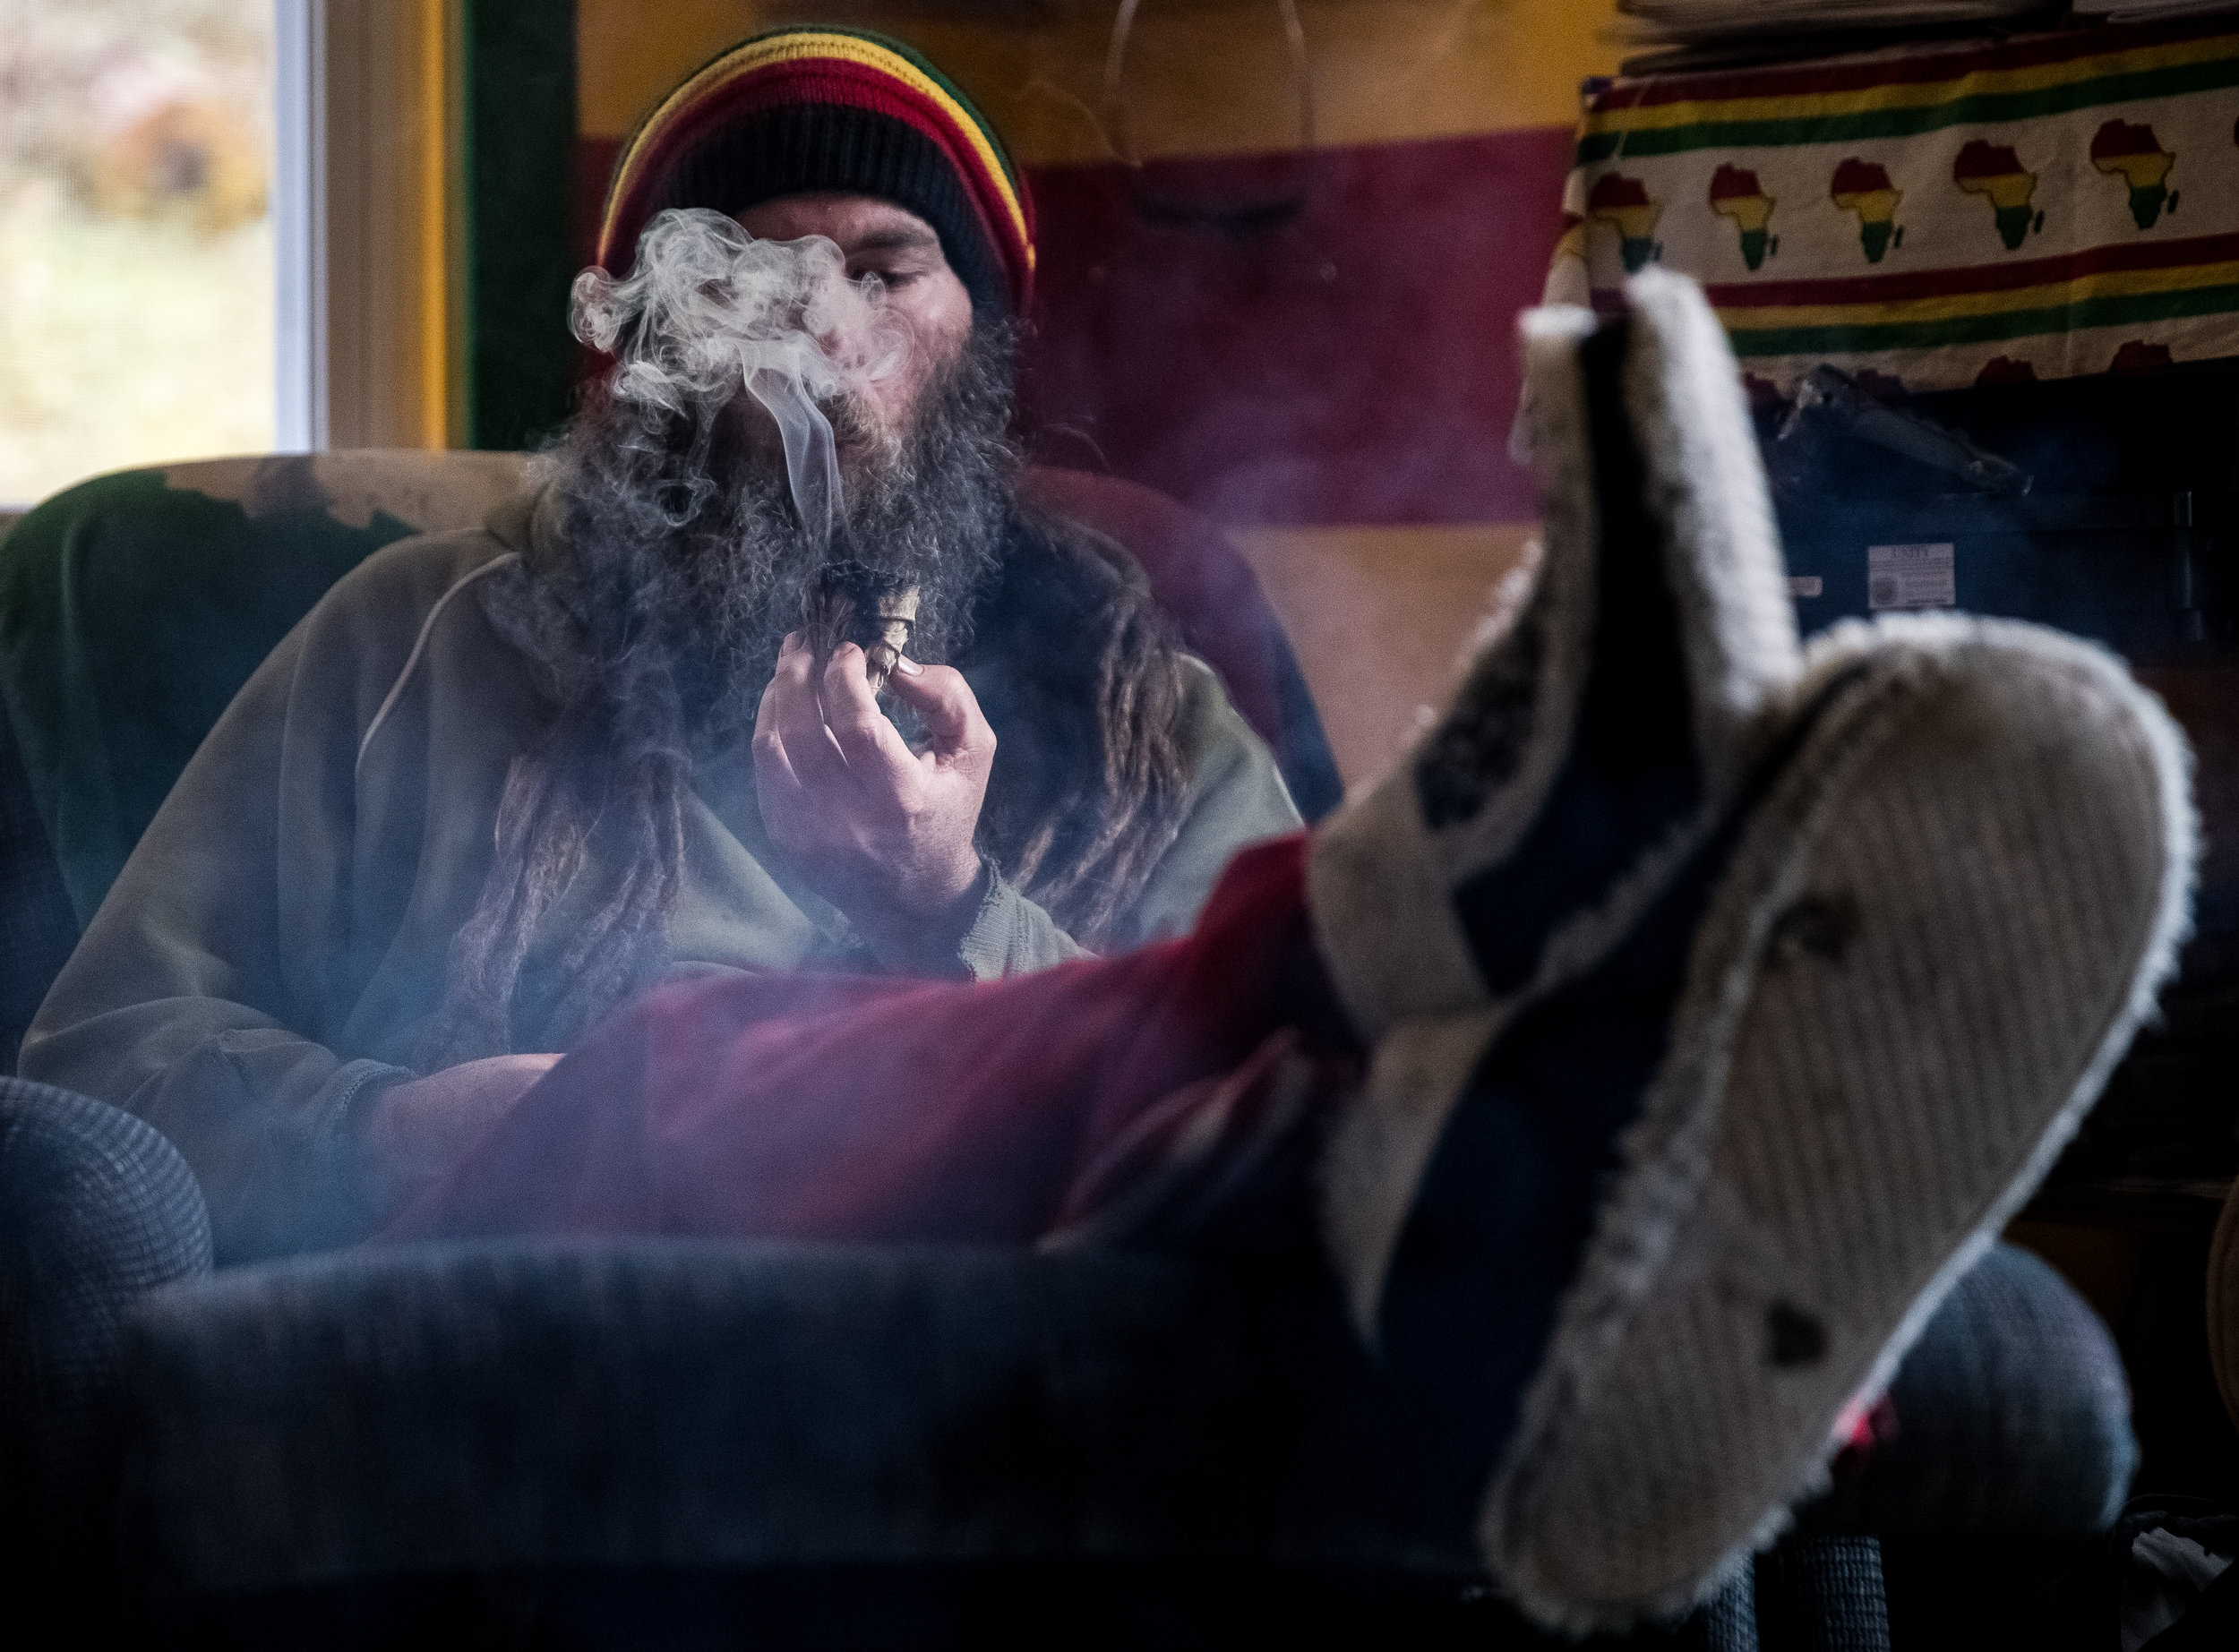 Ed Skopal lives with his family in rural Floyd, Virginia on a four-acre plot of land not far from where he attended school at Virginia Tech. Ed is a Rastafarian and a medicinal herb farmer, using some of the core tenants of the ideology (veganism, homeopathic remedies, generosity and love) to create medicinal products that he sells with his wife Maya at local farmers markets.  After being falsely accused of molestation in middle school, putting a child up for adoption just before college and becoming morbidly obese, he was primed to make drastic changes in his life with the help of some key professors at the university. He entered into Virginia Tech's graduate school in the department of sociology and wrote a dissertation on the economic effects Reggae music had on the Jamaican economy. The research trips he made to Jamaica ultimately led to his desire to take the Vow of the Nazarite, fully converting himself to Rastafarianism.  With his life and identity rebuilt, the home he now shares with his three children (Adaijah, Jahzara, and Irijah) is a reflection of the happiness that a commitment to love, health and freedom has brought him and his family.